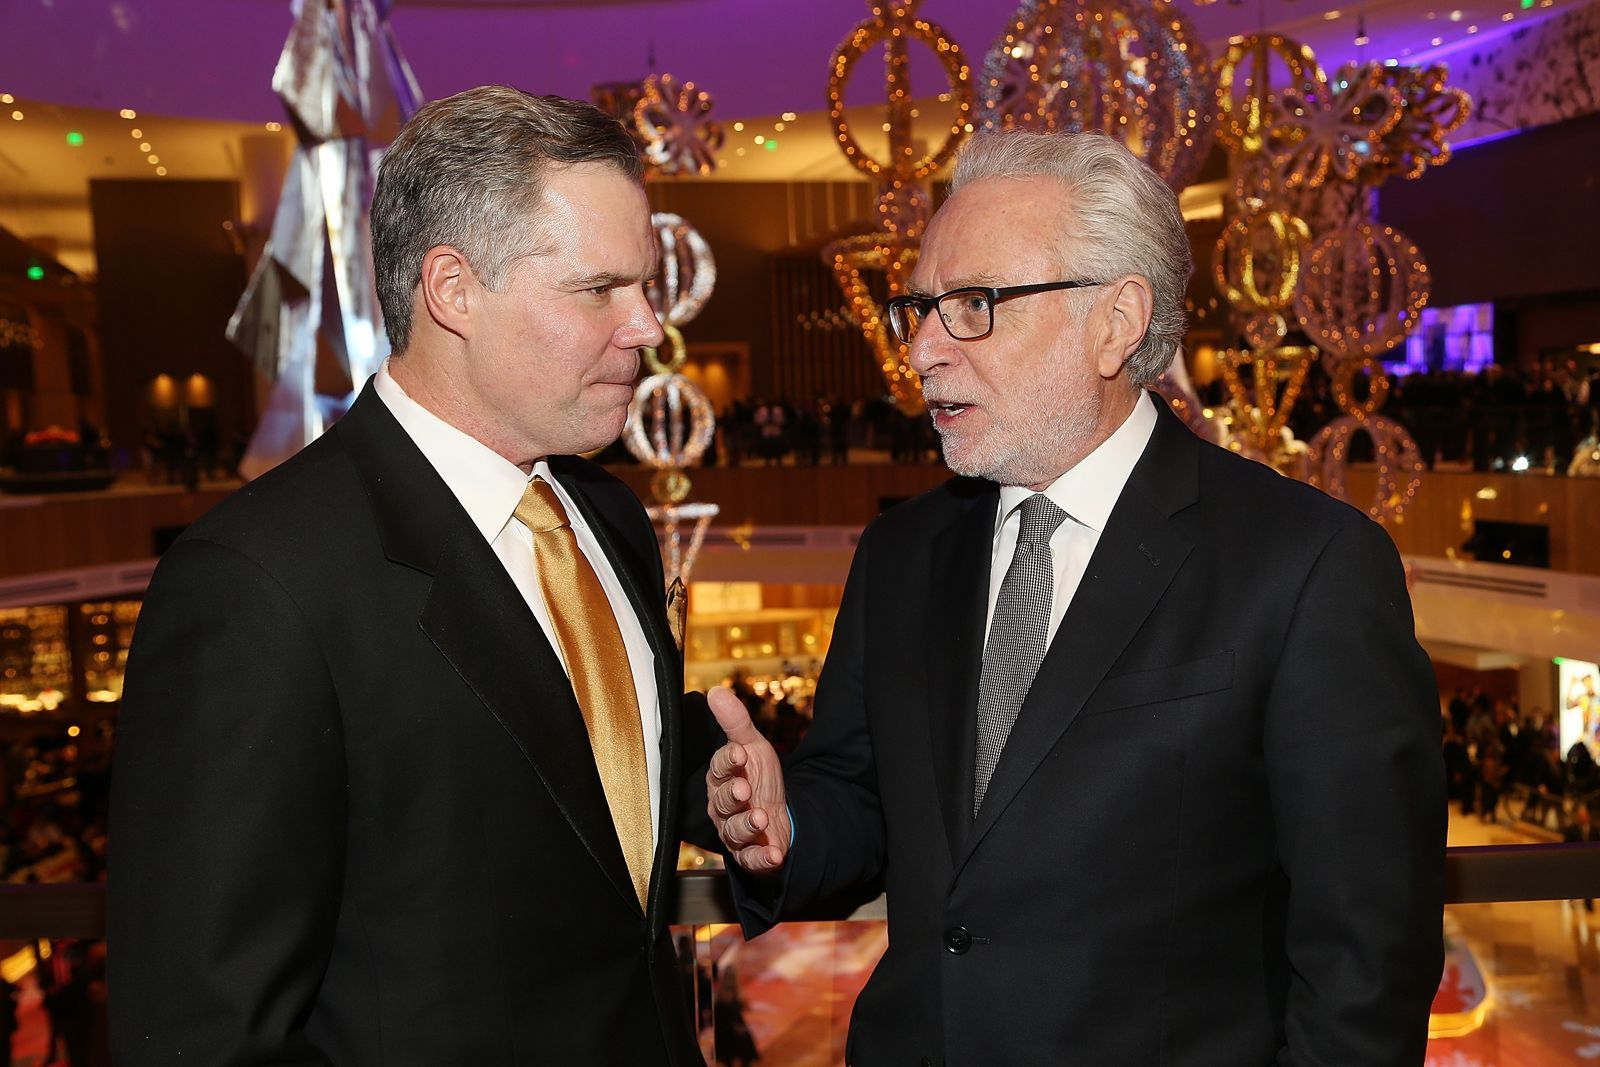 NATIONAL HARBOR, MD - DECEMBER 08:  MGM Resorts International Chairman and CEO Jim Murren (L) and Wolf Blitzer attend the MGM National Harbor Grand Opening Gala on December 8, 2016 in National Harbor, Maryland.  (Photo by Paul Morigi/Getty Images for MGM National Harbor)